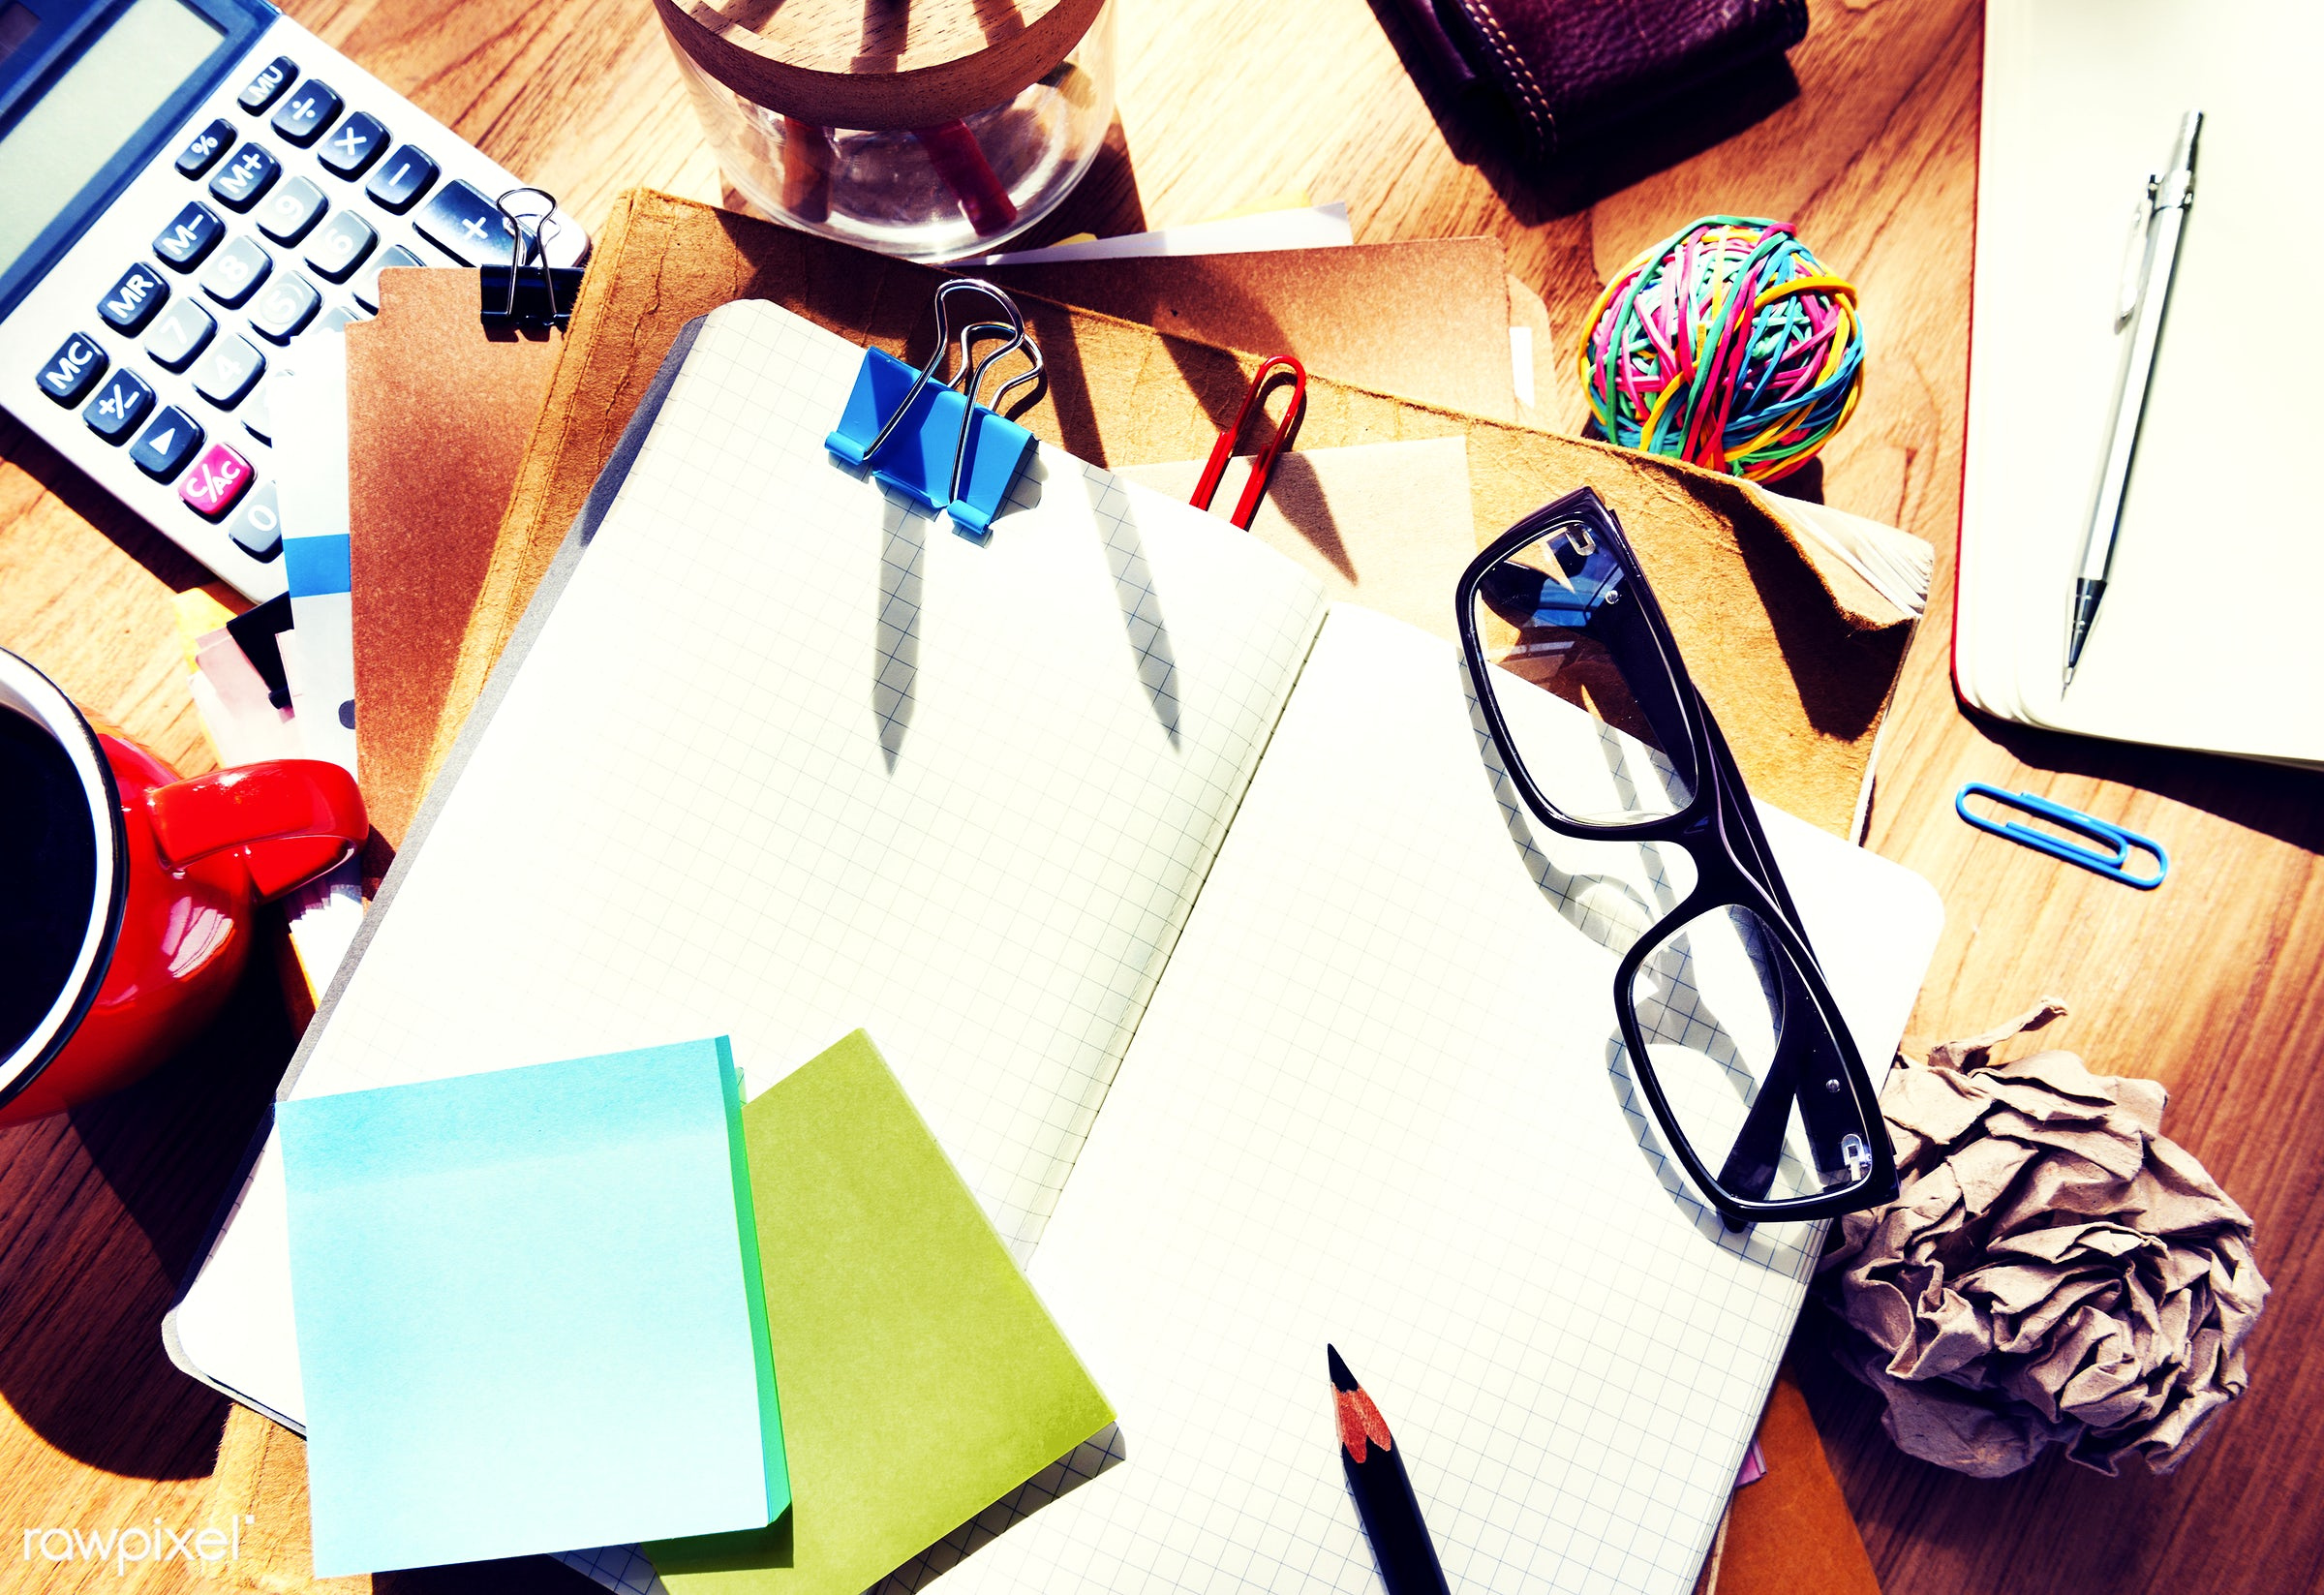 architect, architectural equipments, architecture, blank note, brown table, calculator, coffee, color swatch, contemporary,...